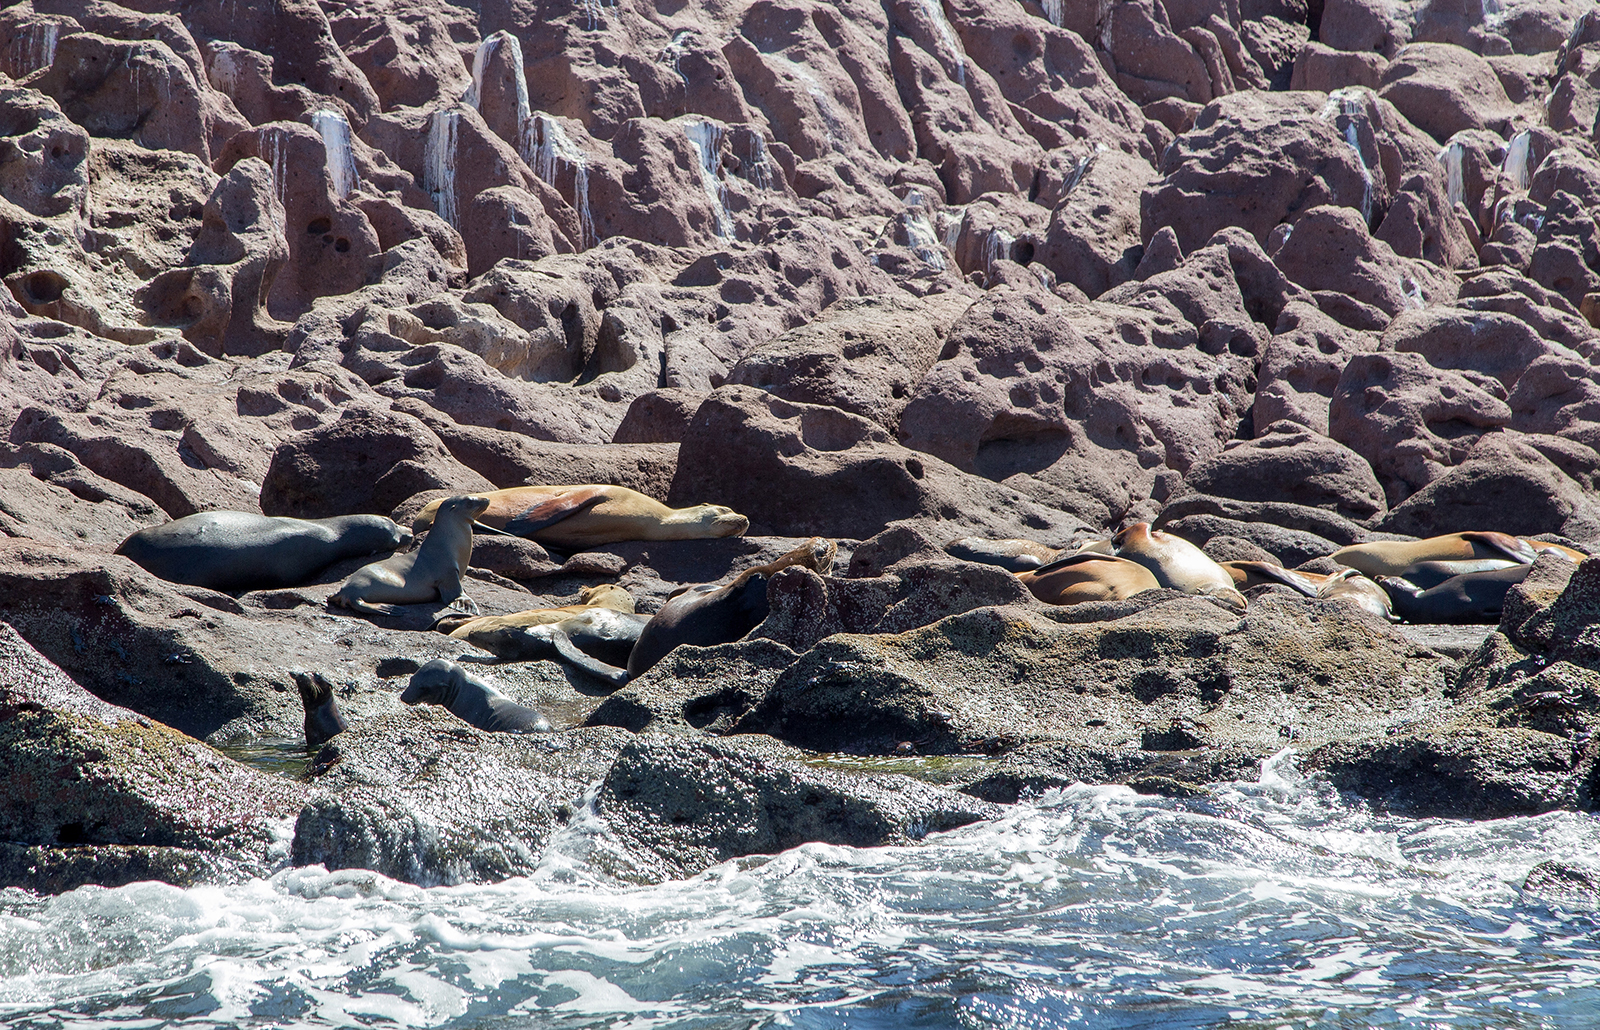 Sunbathing beauties - sea lions at Isla Espiritu Santo Mexico